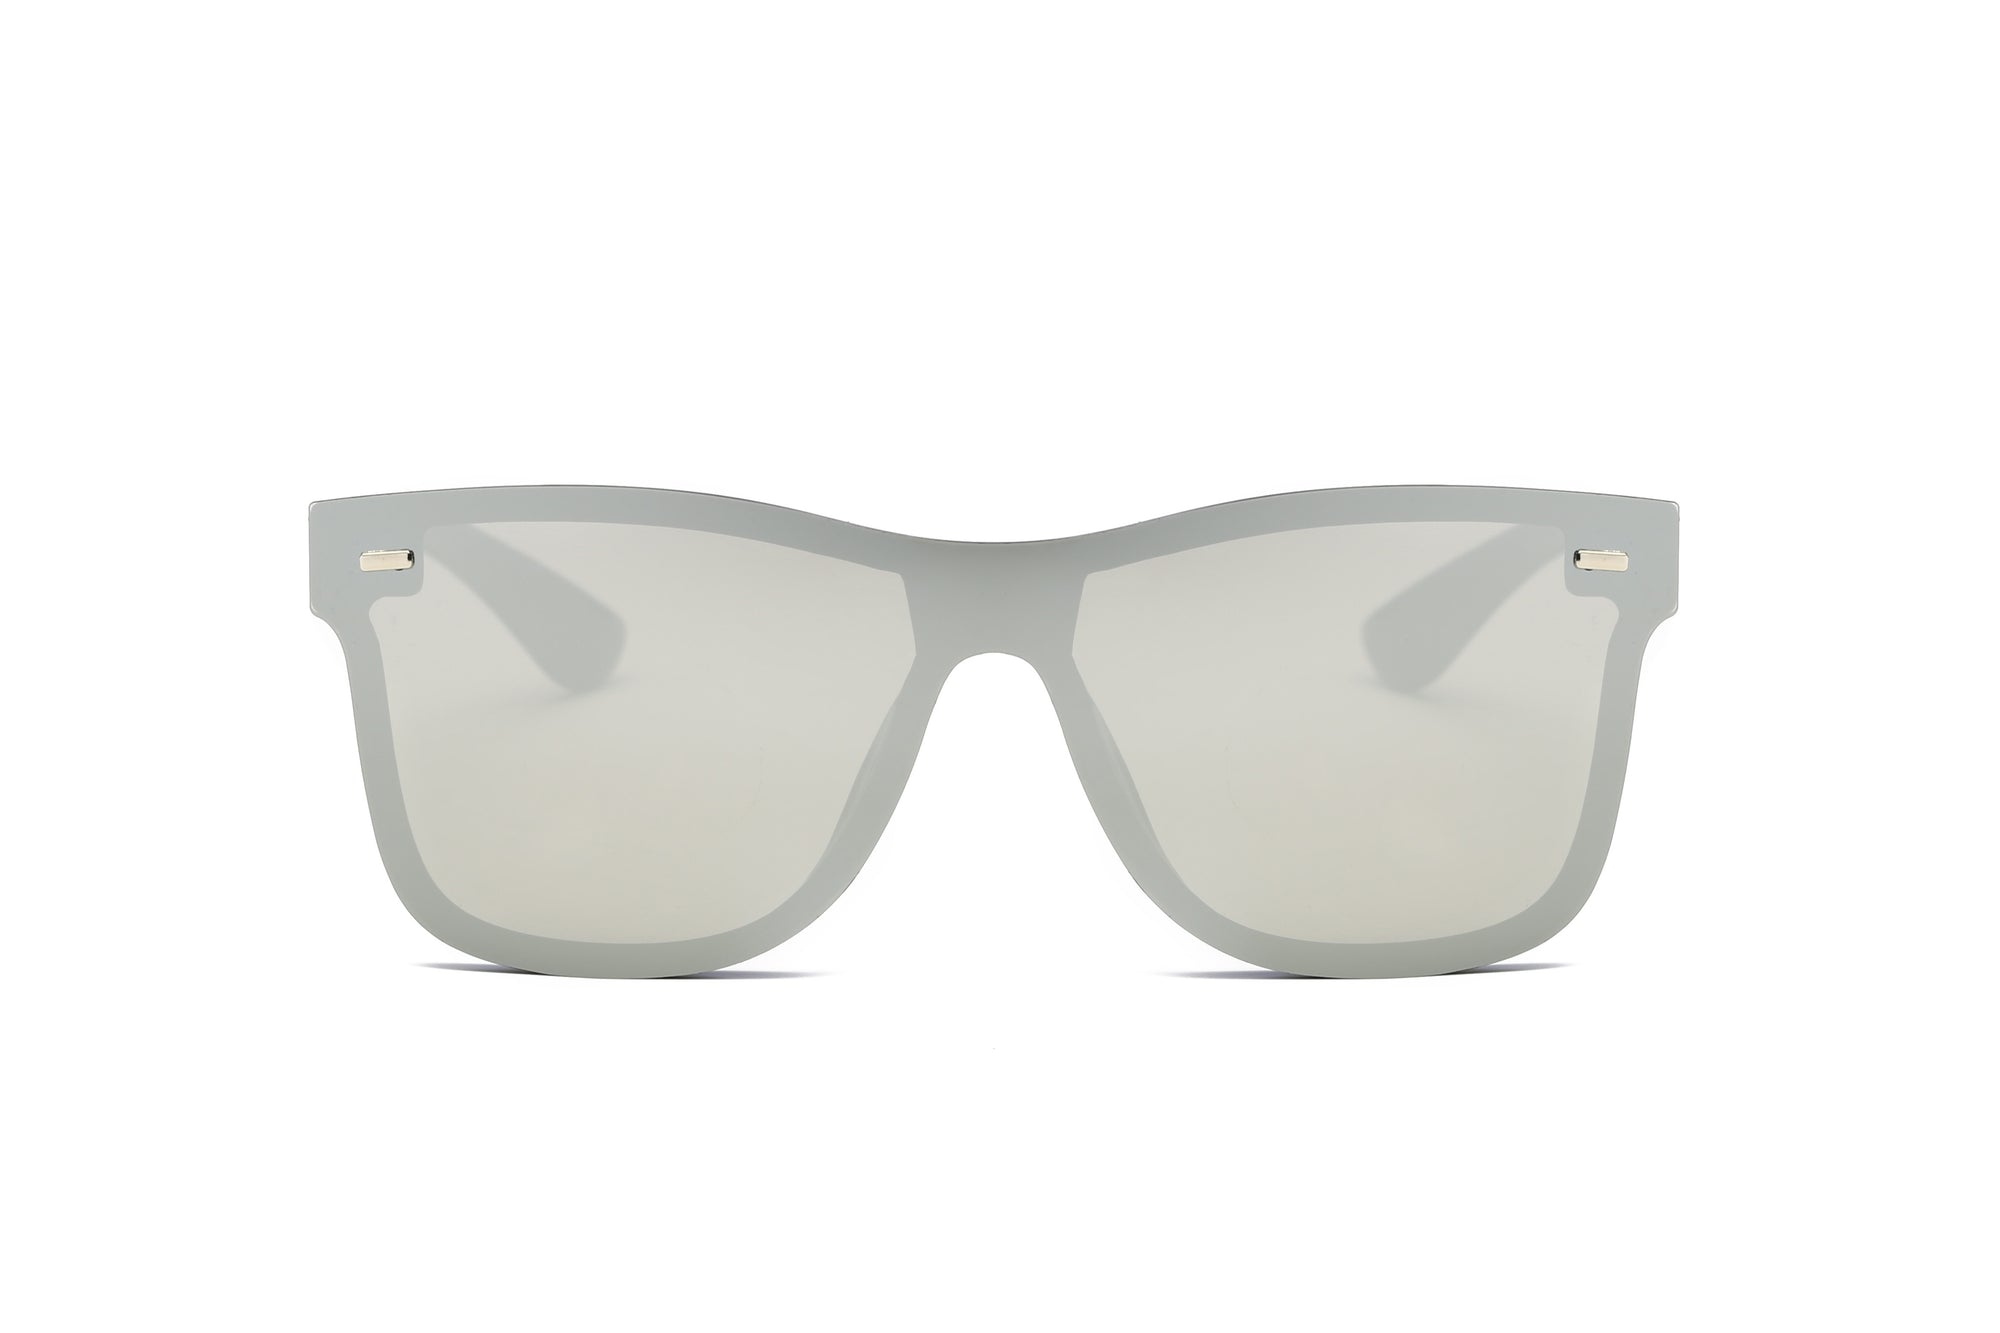 S2010 - Modern Colored Rim Men's Horn Rimmed Sunglasses - Iris Fashion Inc.